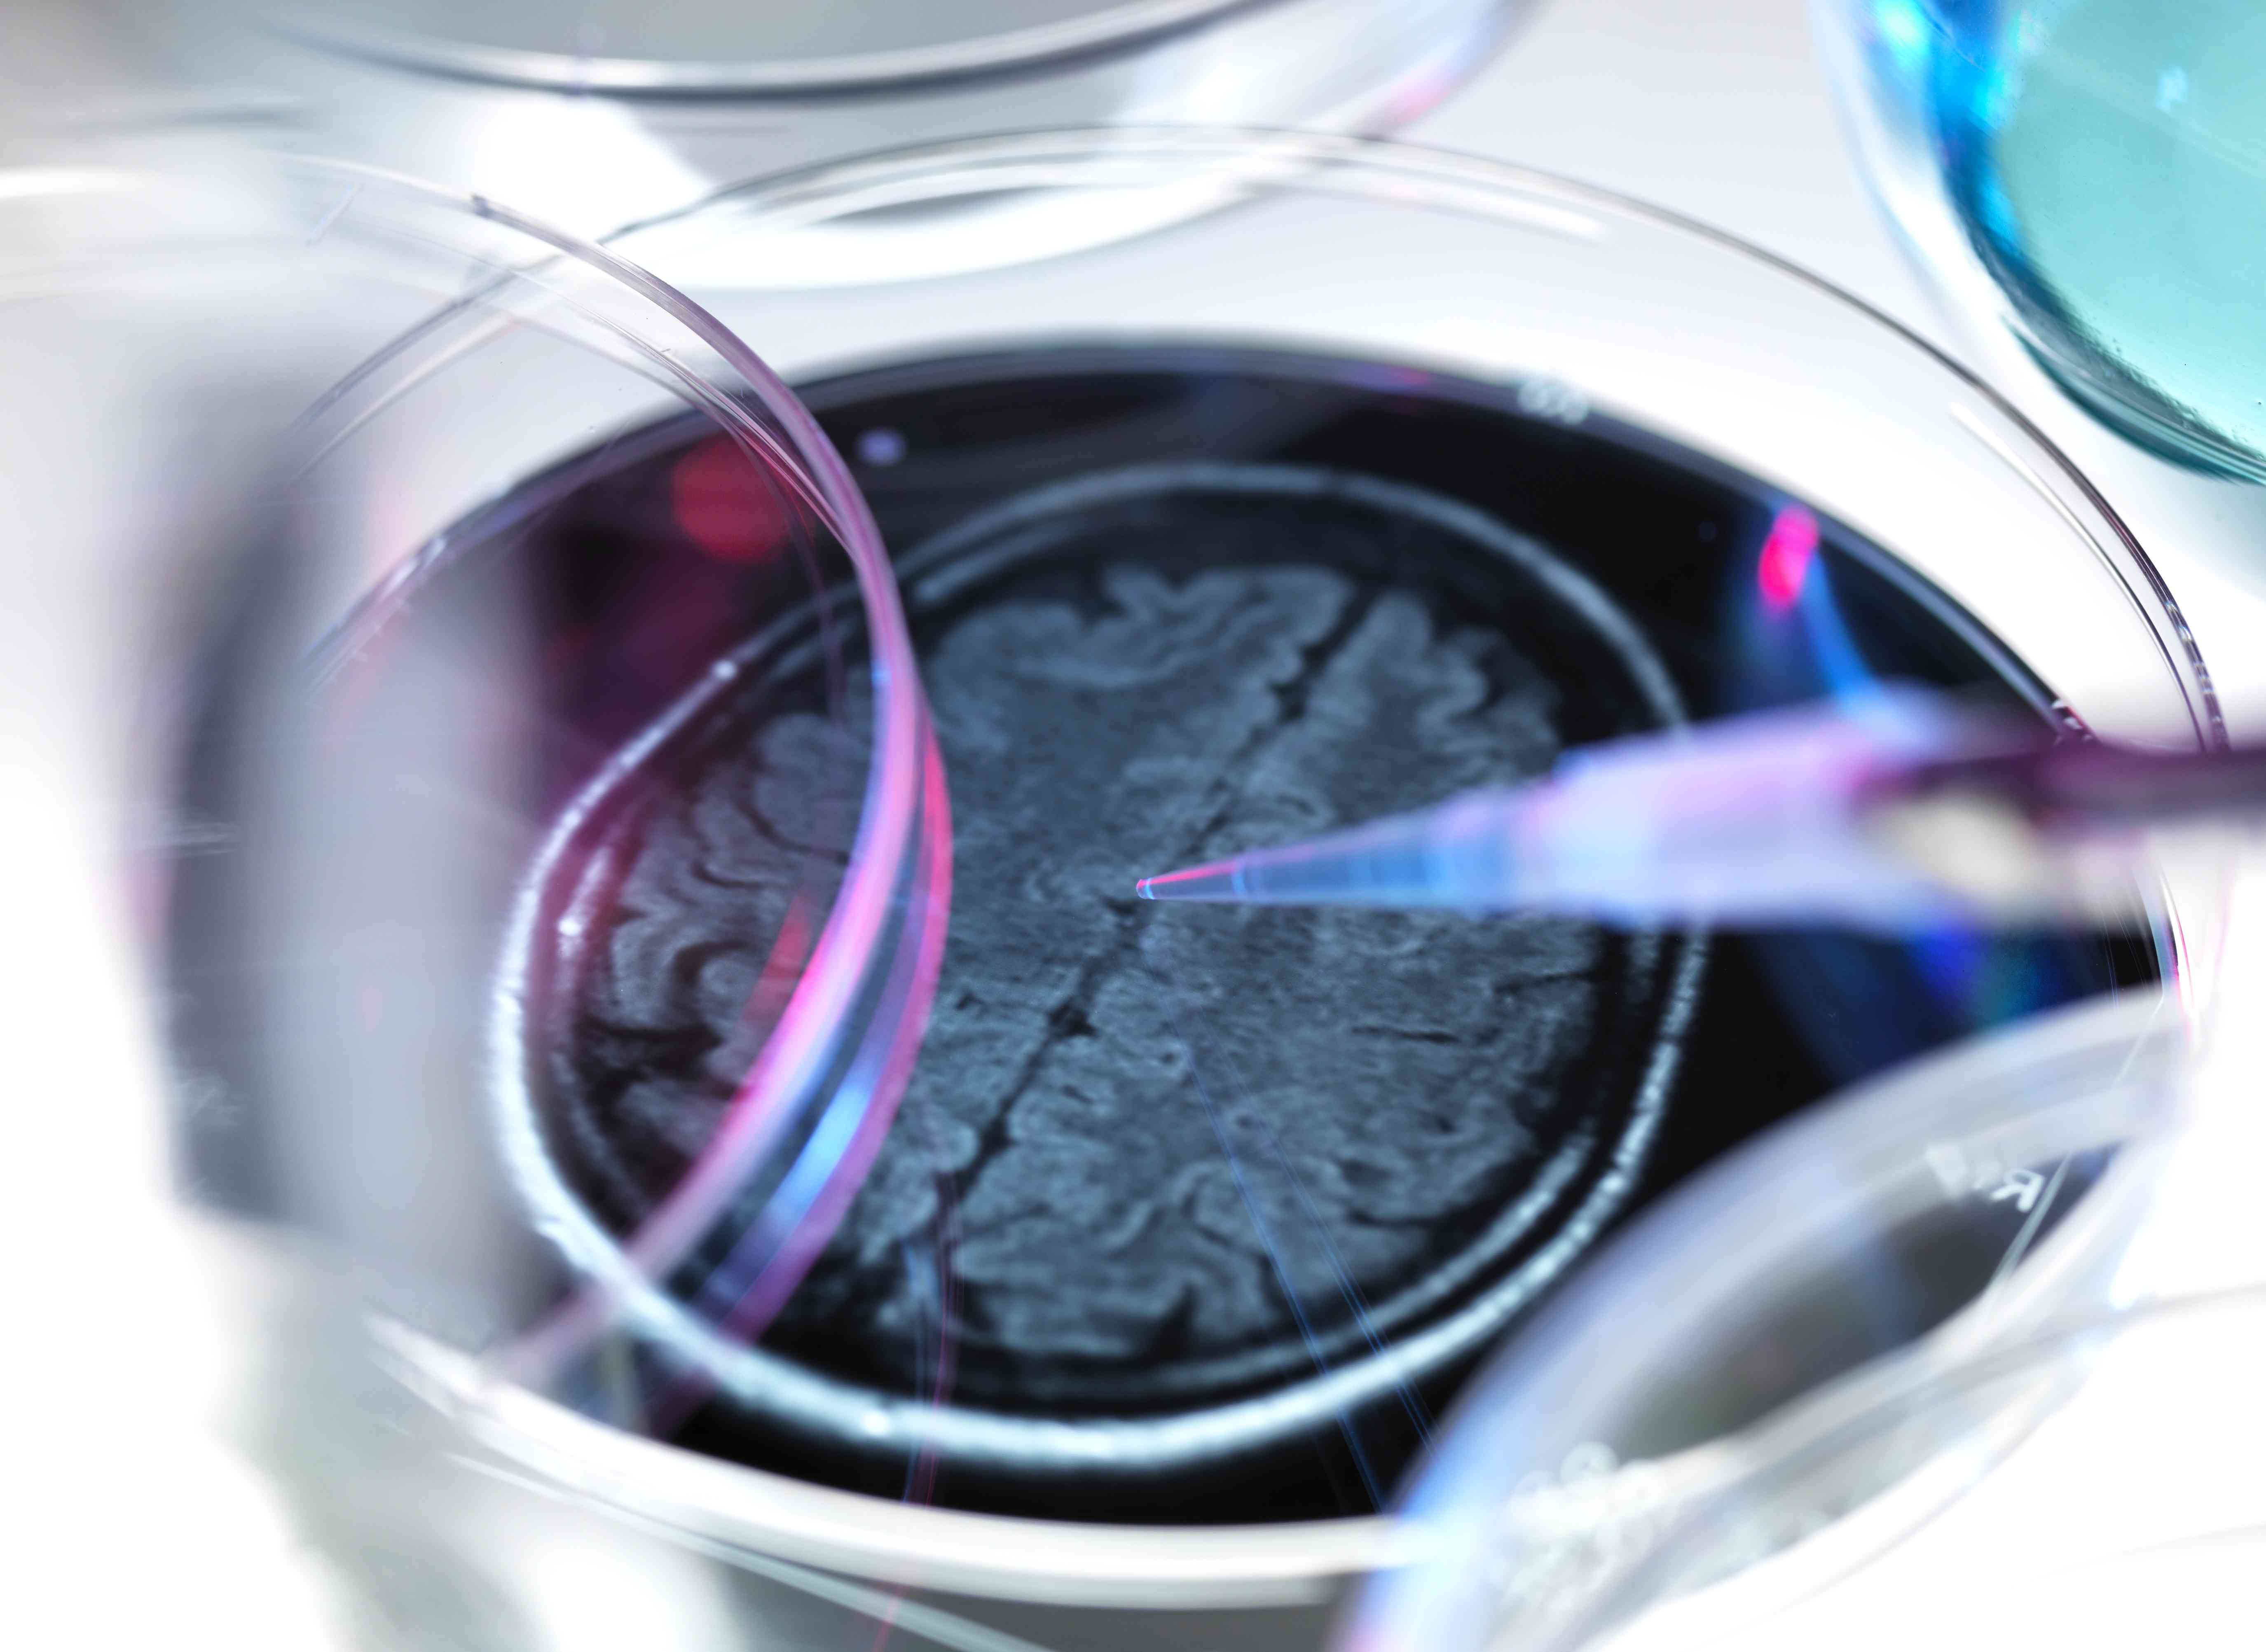 Brain scan in a petri dish illustrating research into dementia and other brain disorders